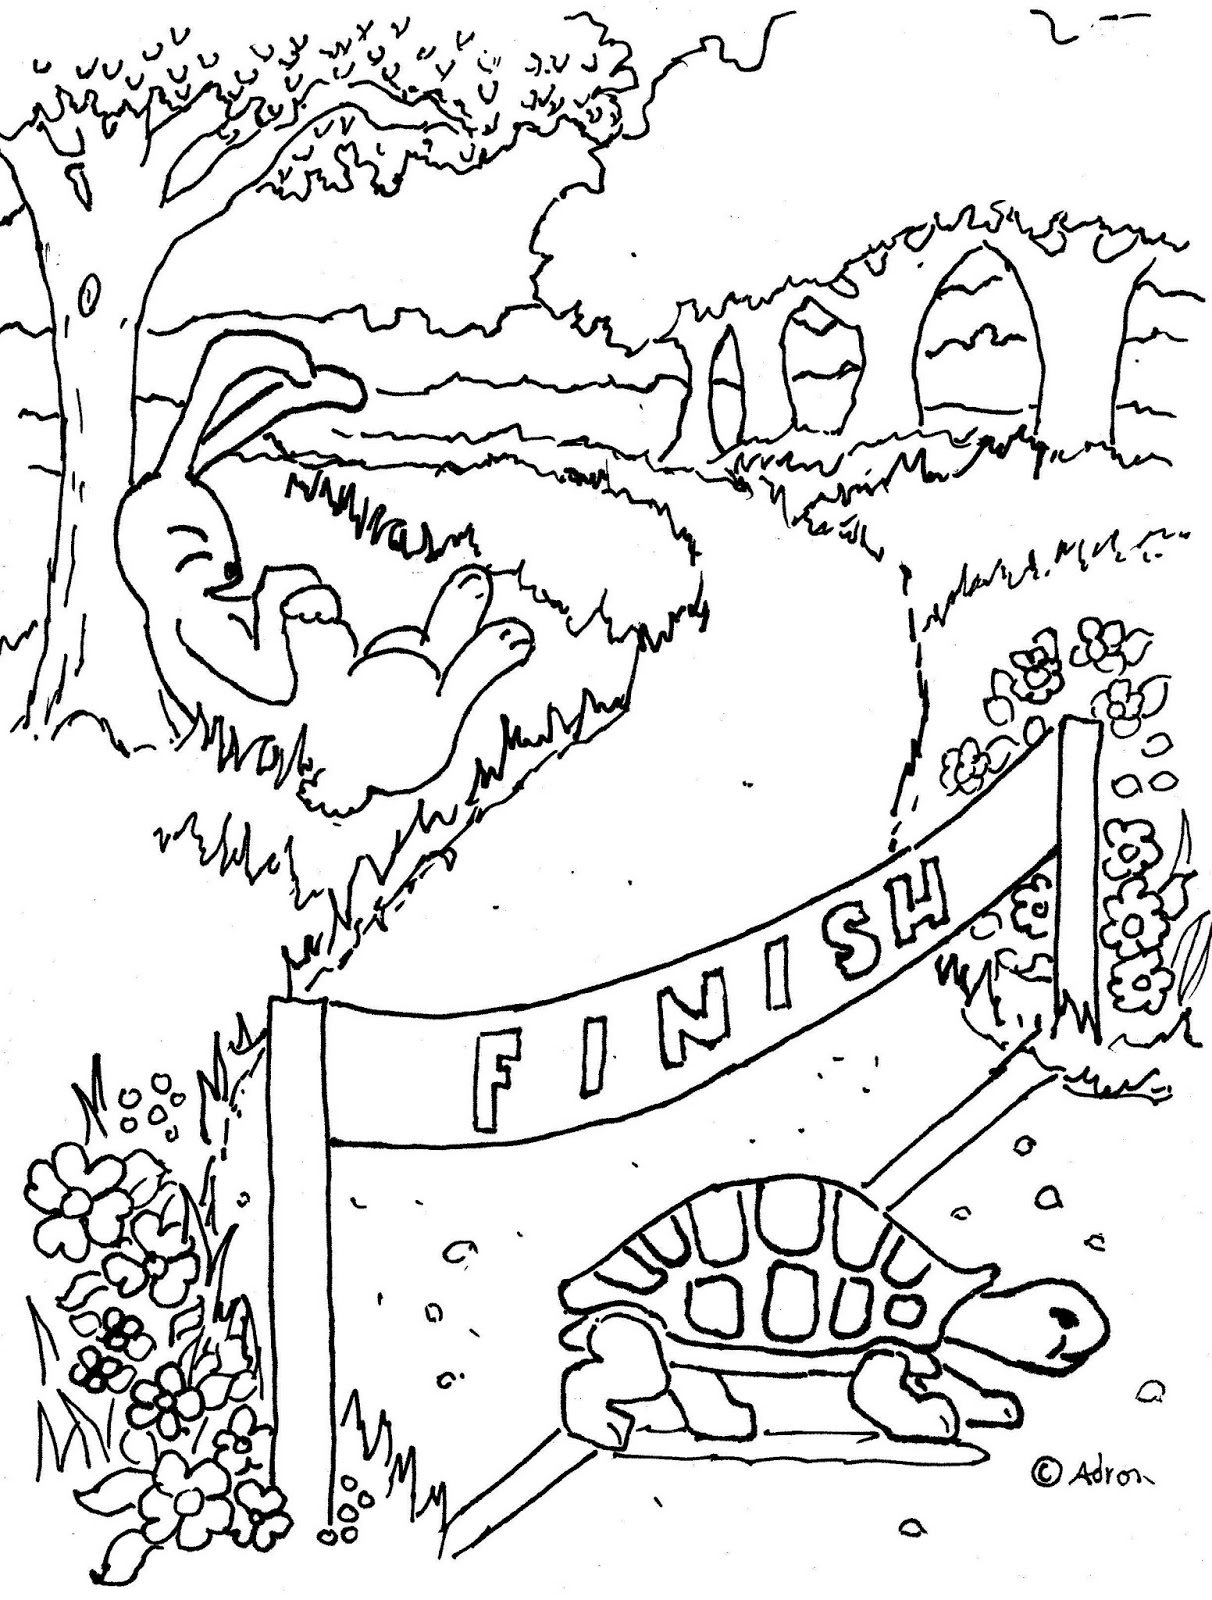 coloring pages for kids by mr adron tortoise and the hare print